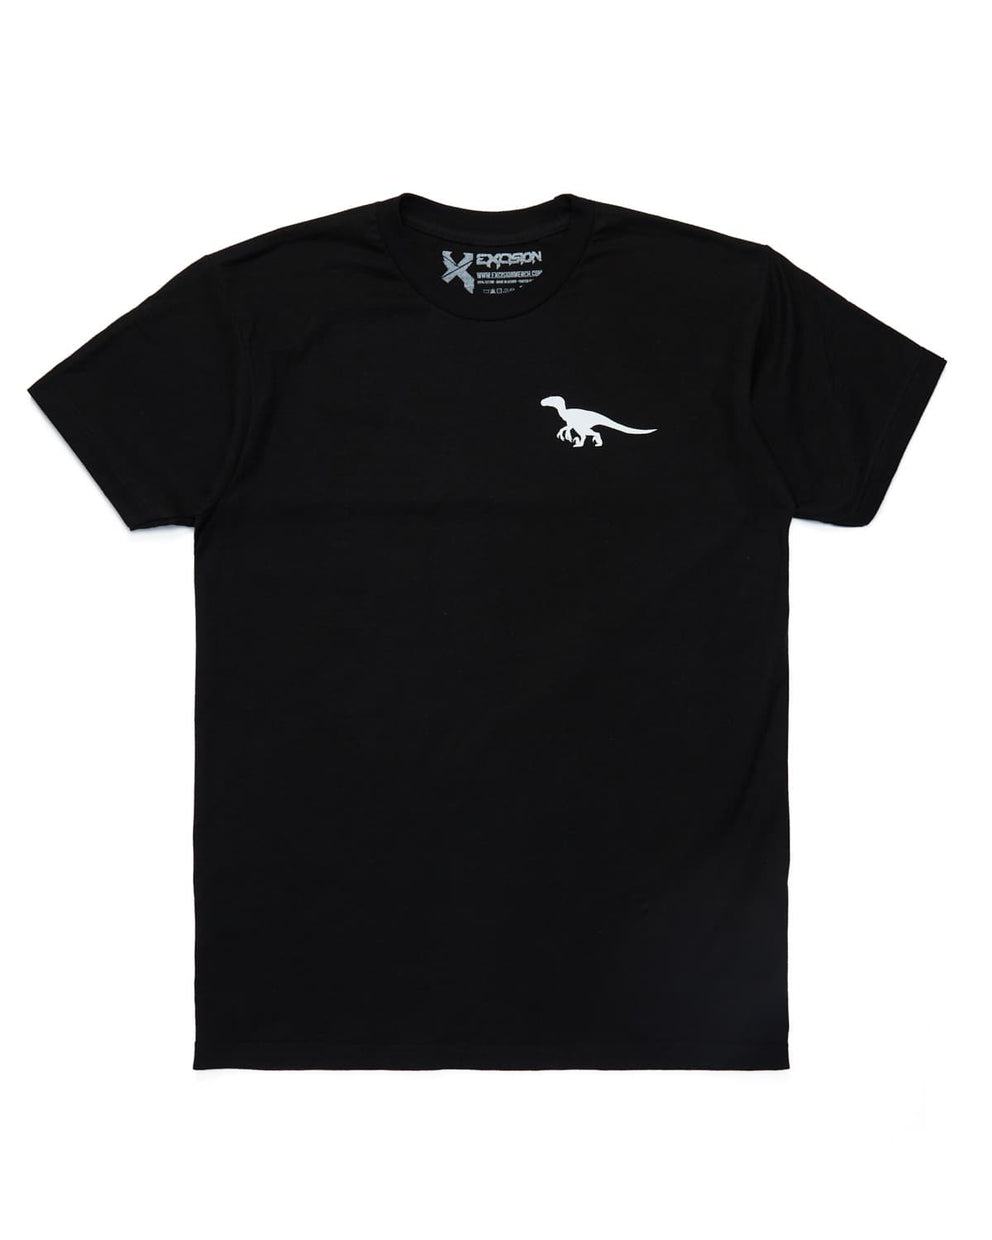 Lost Lands 'Raptor' Tee